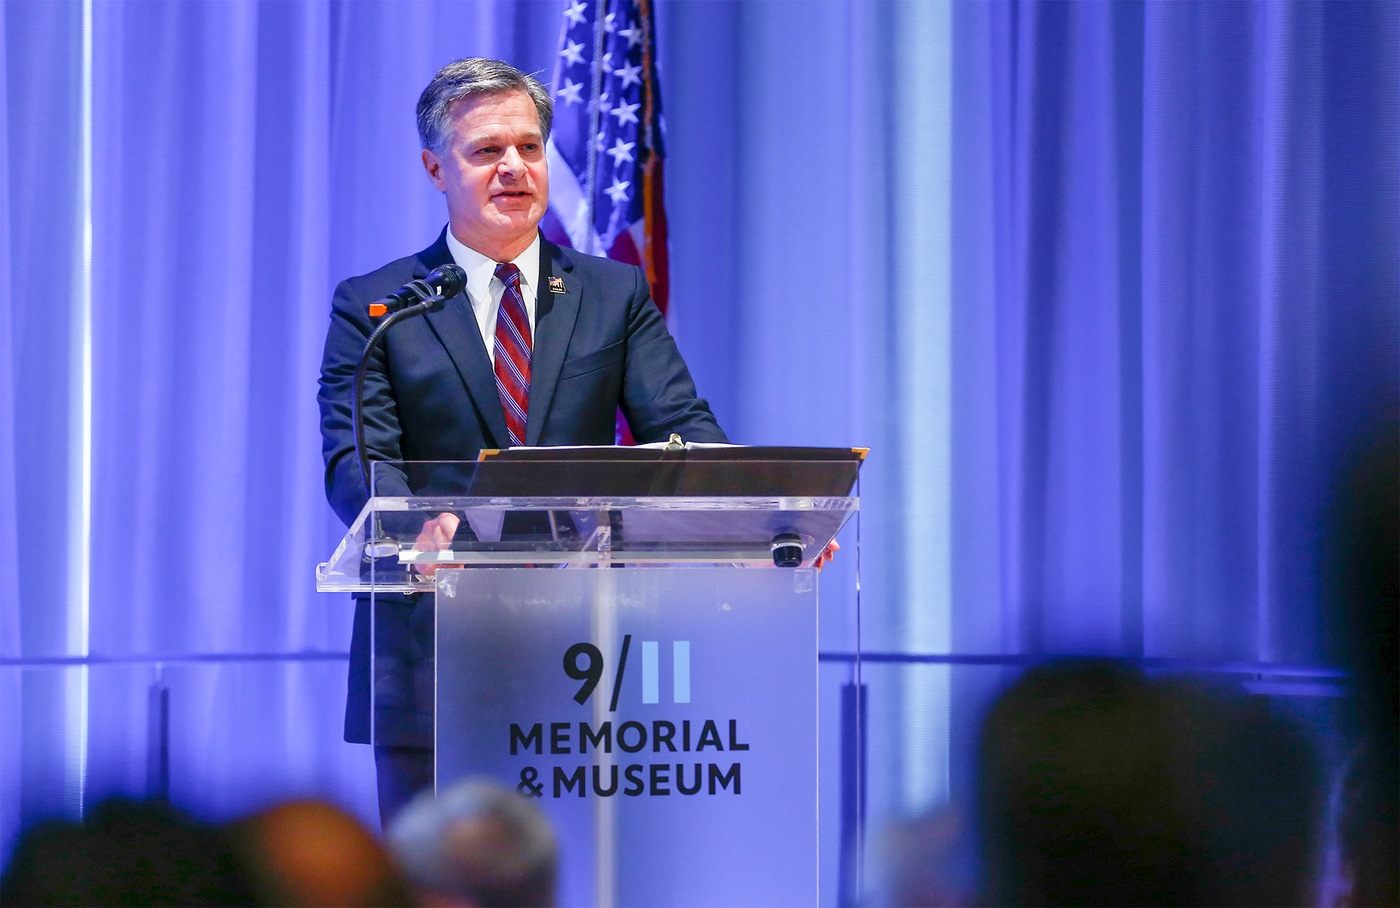 FBI Director Christopher Wray speaks about compensation available to federal first responders with 9/11-related illnesses at the 9/11 Memorial & Museum in New York City on September 7, 2018. (Photo credit: Jin S. Lee, 9/11 Memorial)